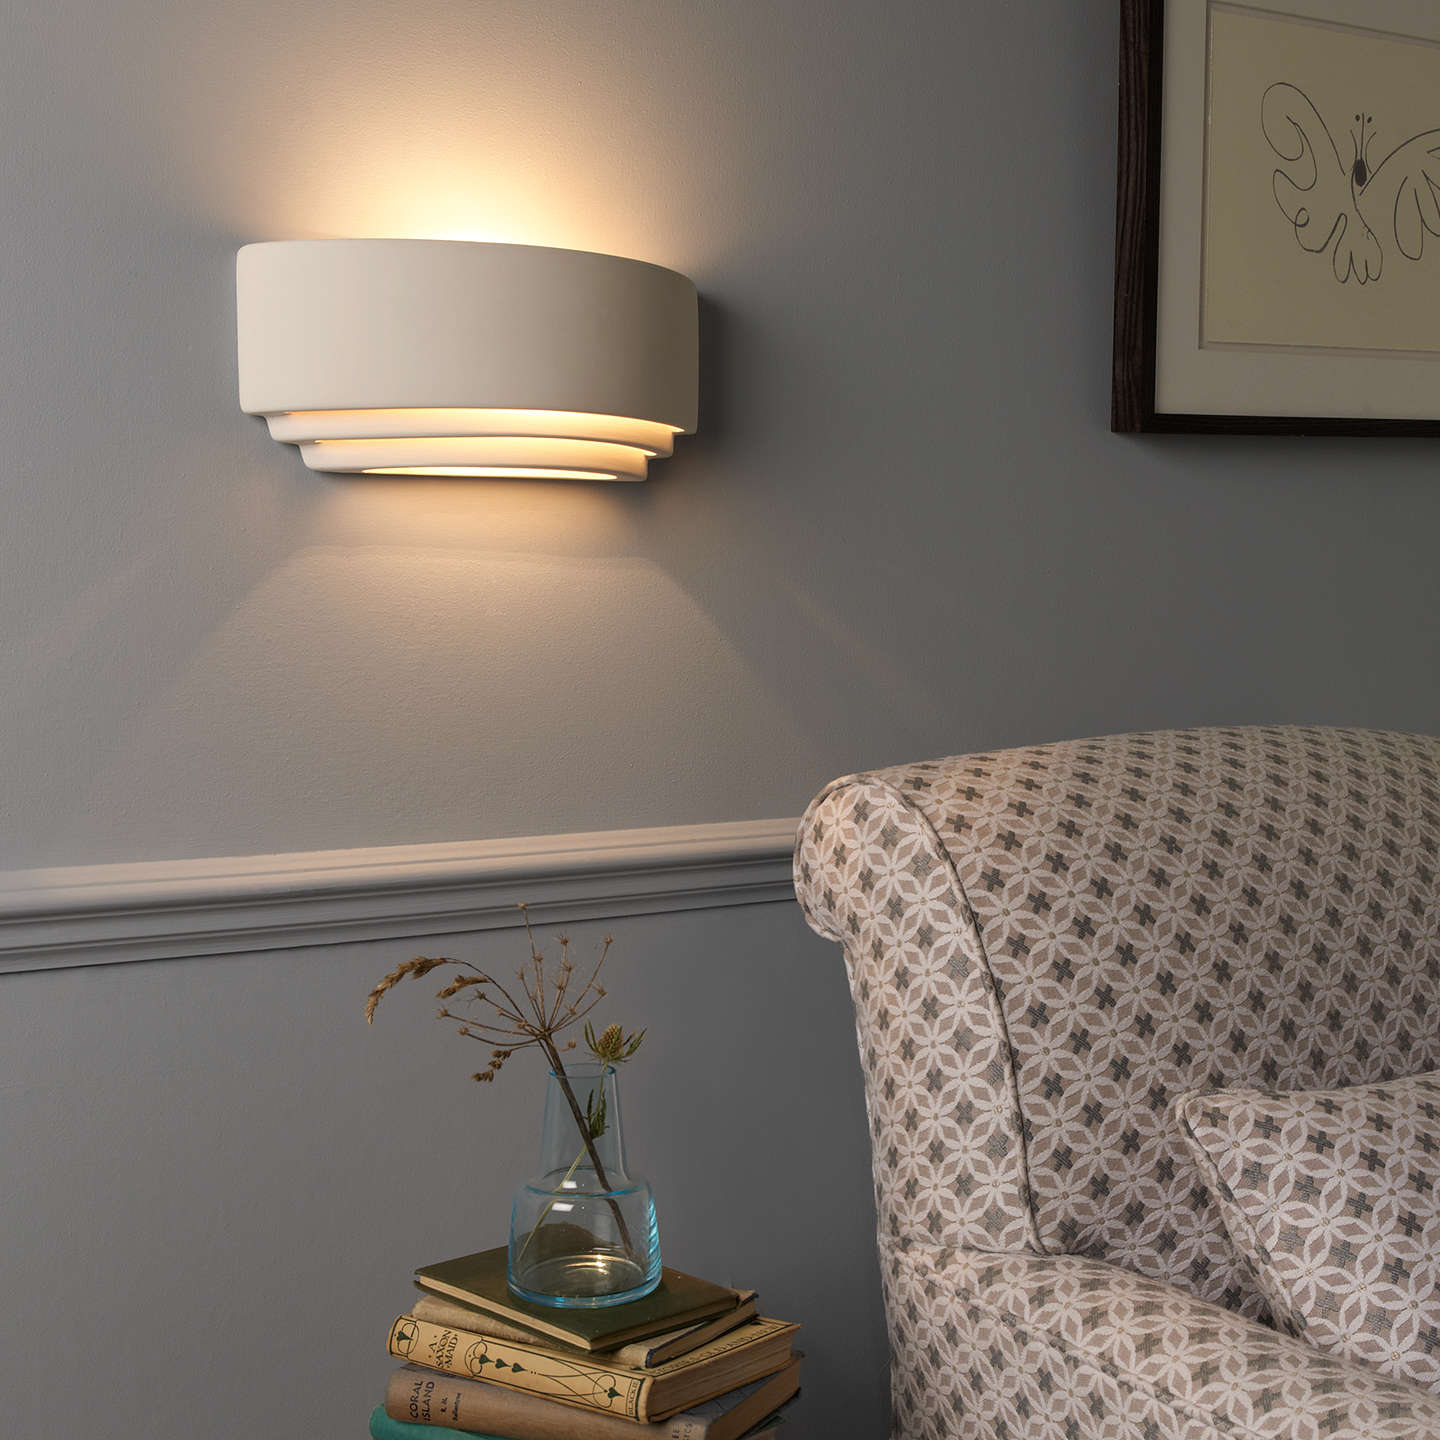 Astro amalfi wall light at john lewis buyastro amalfi wall light online at johnlewis aloadofball Image collections